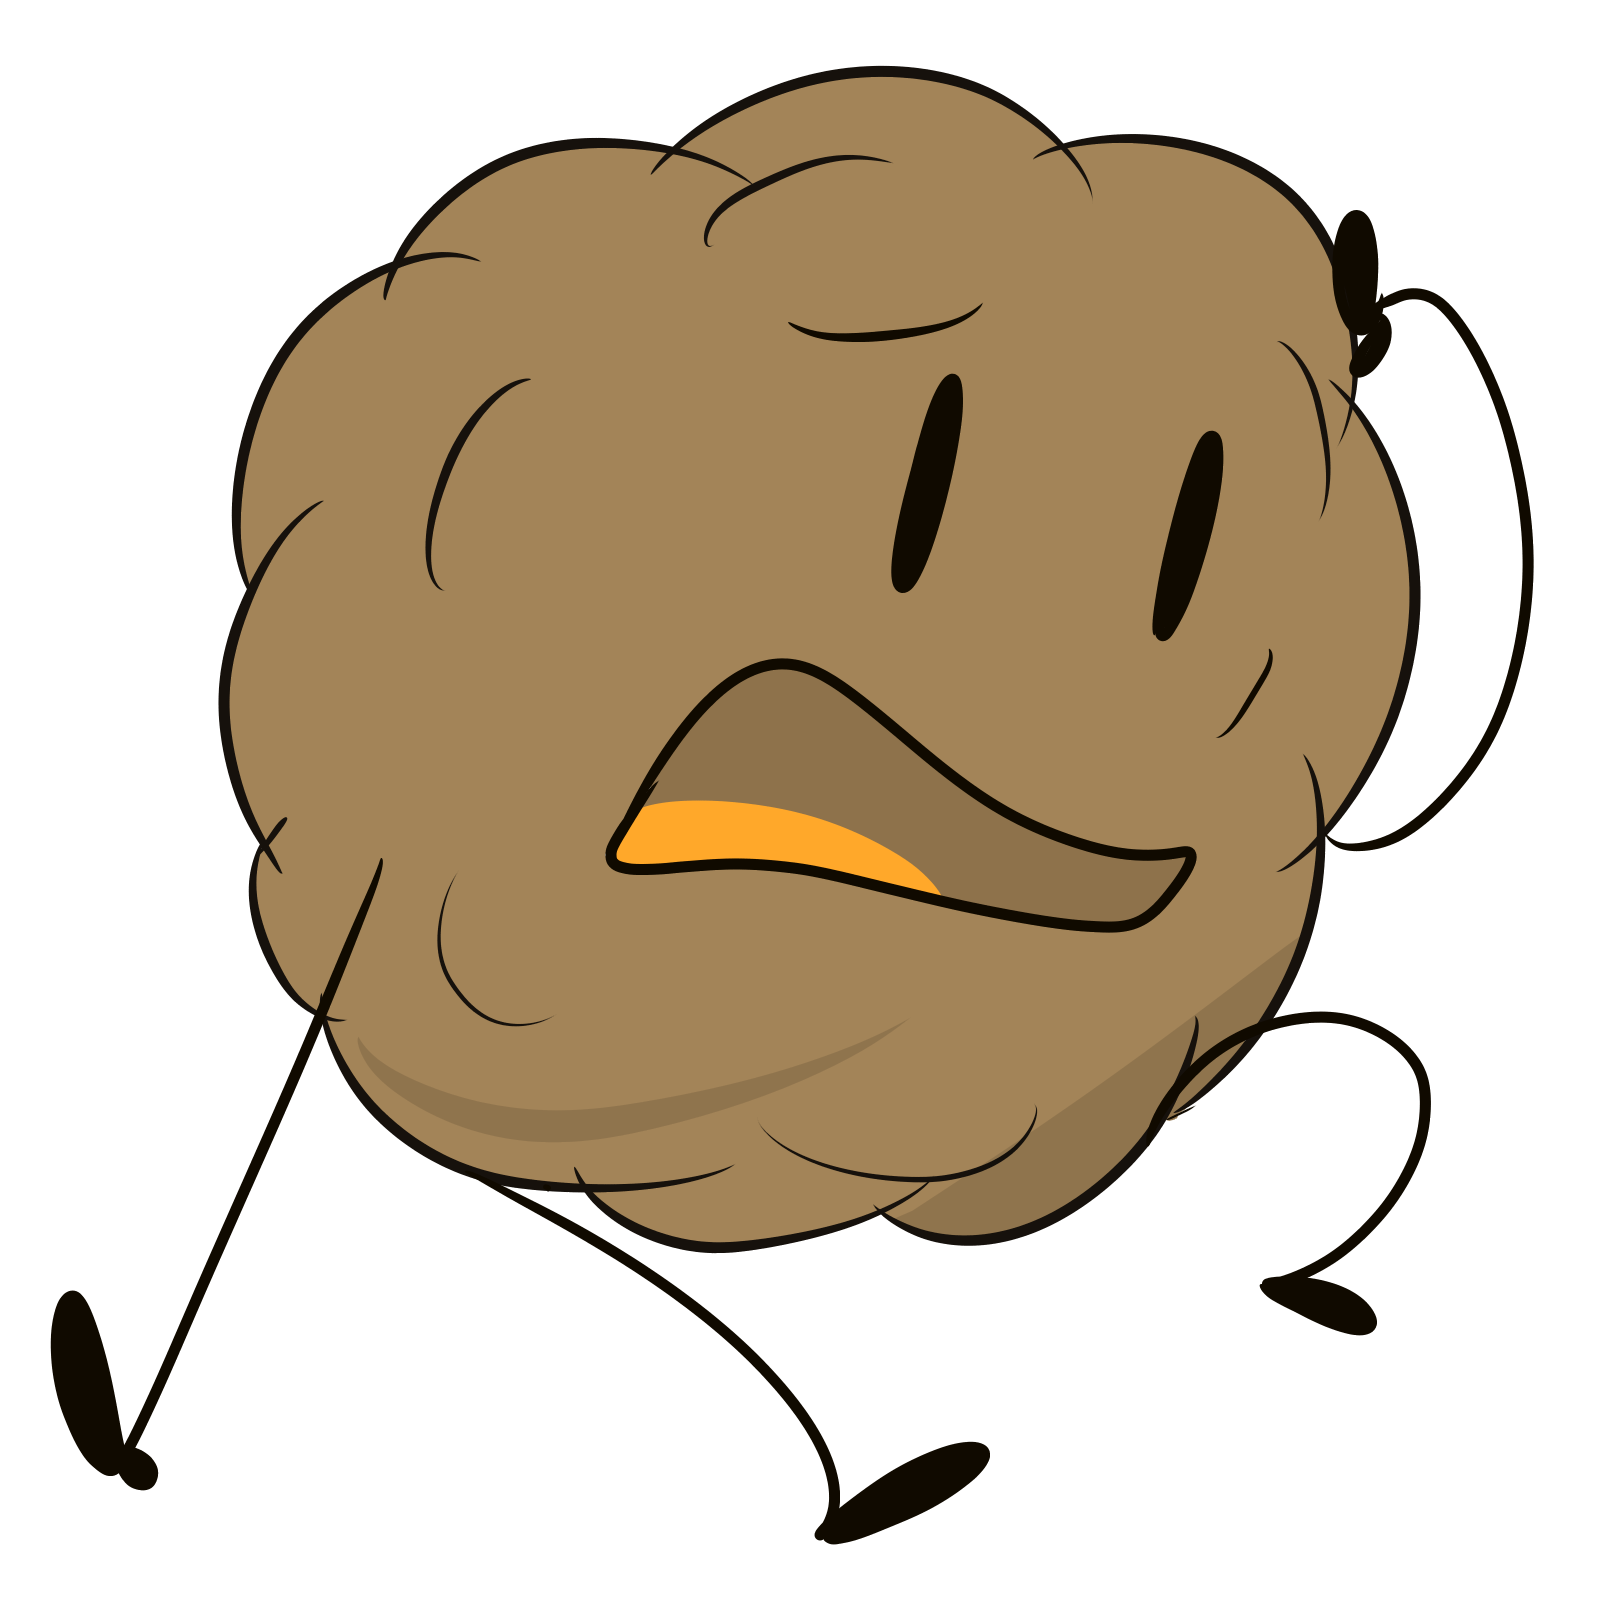 Tumbleweed png. Image battle for dream